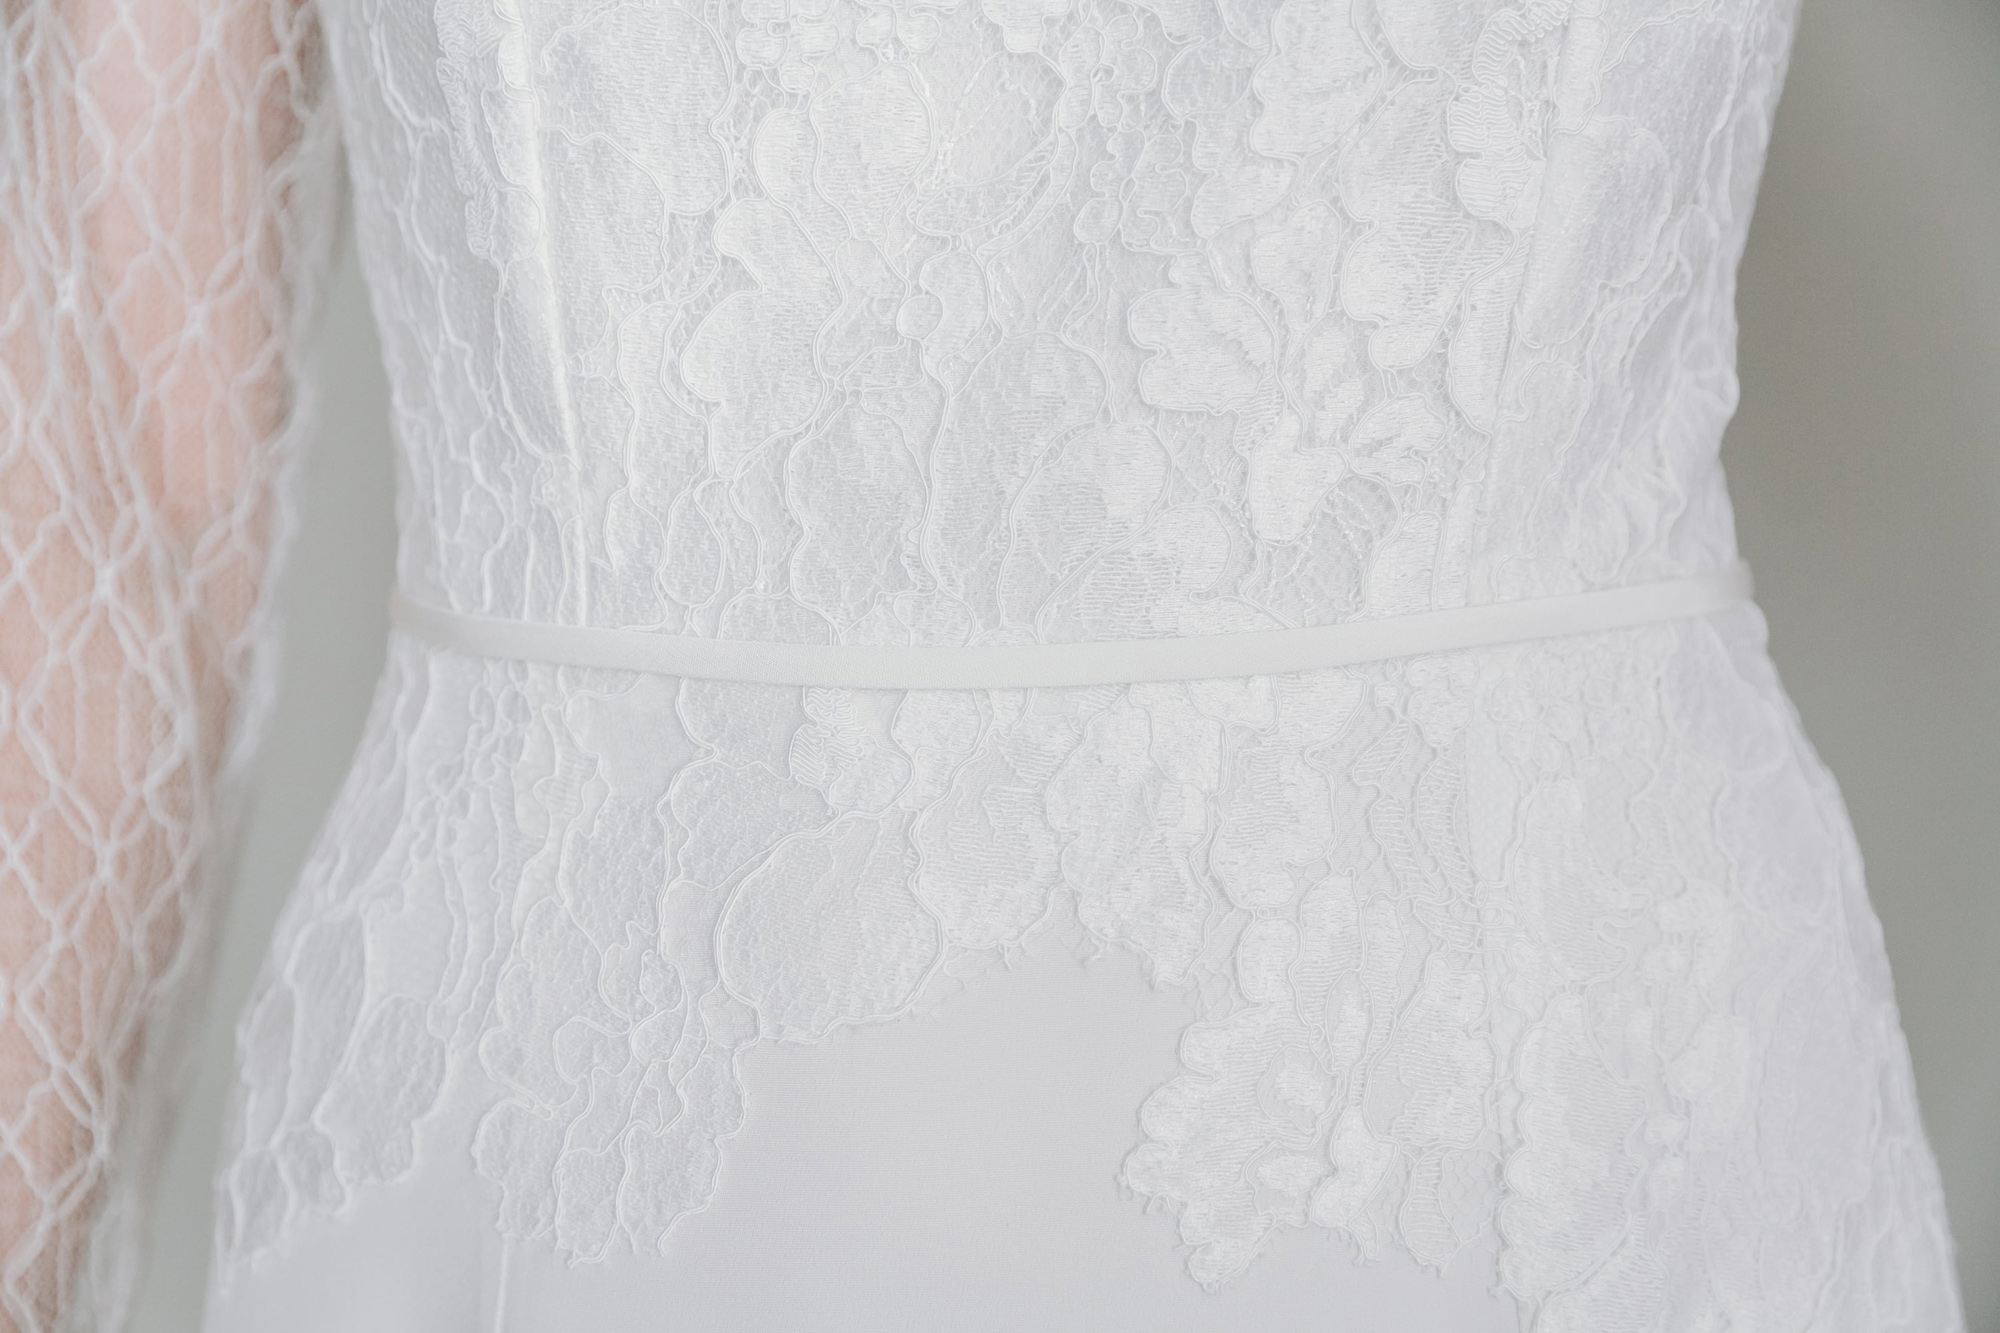 Kate-Beaumont-Sheffield-Geranium-Applique-Lace-Silk-Modern-Minimal-Long-Sleeved-Wedding-Gown-5.jpg